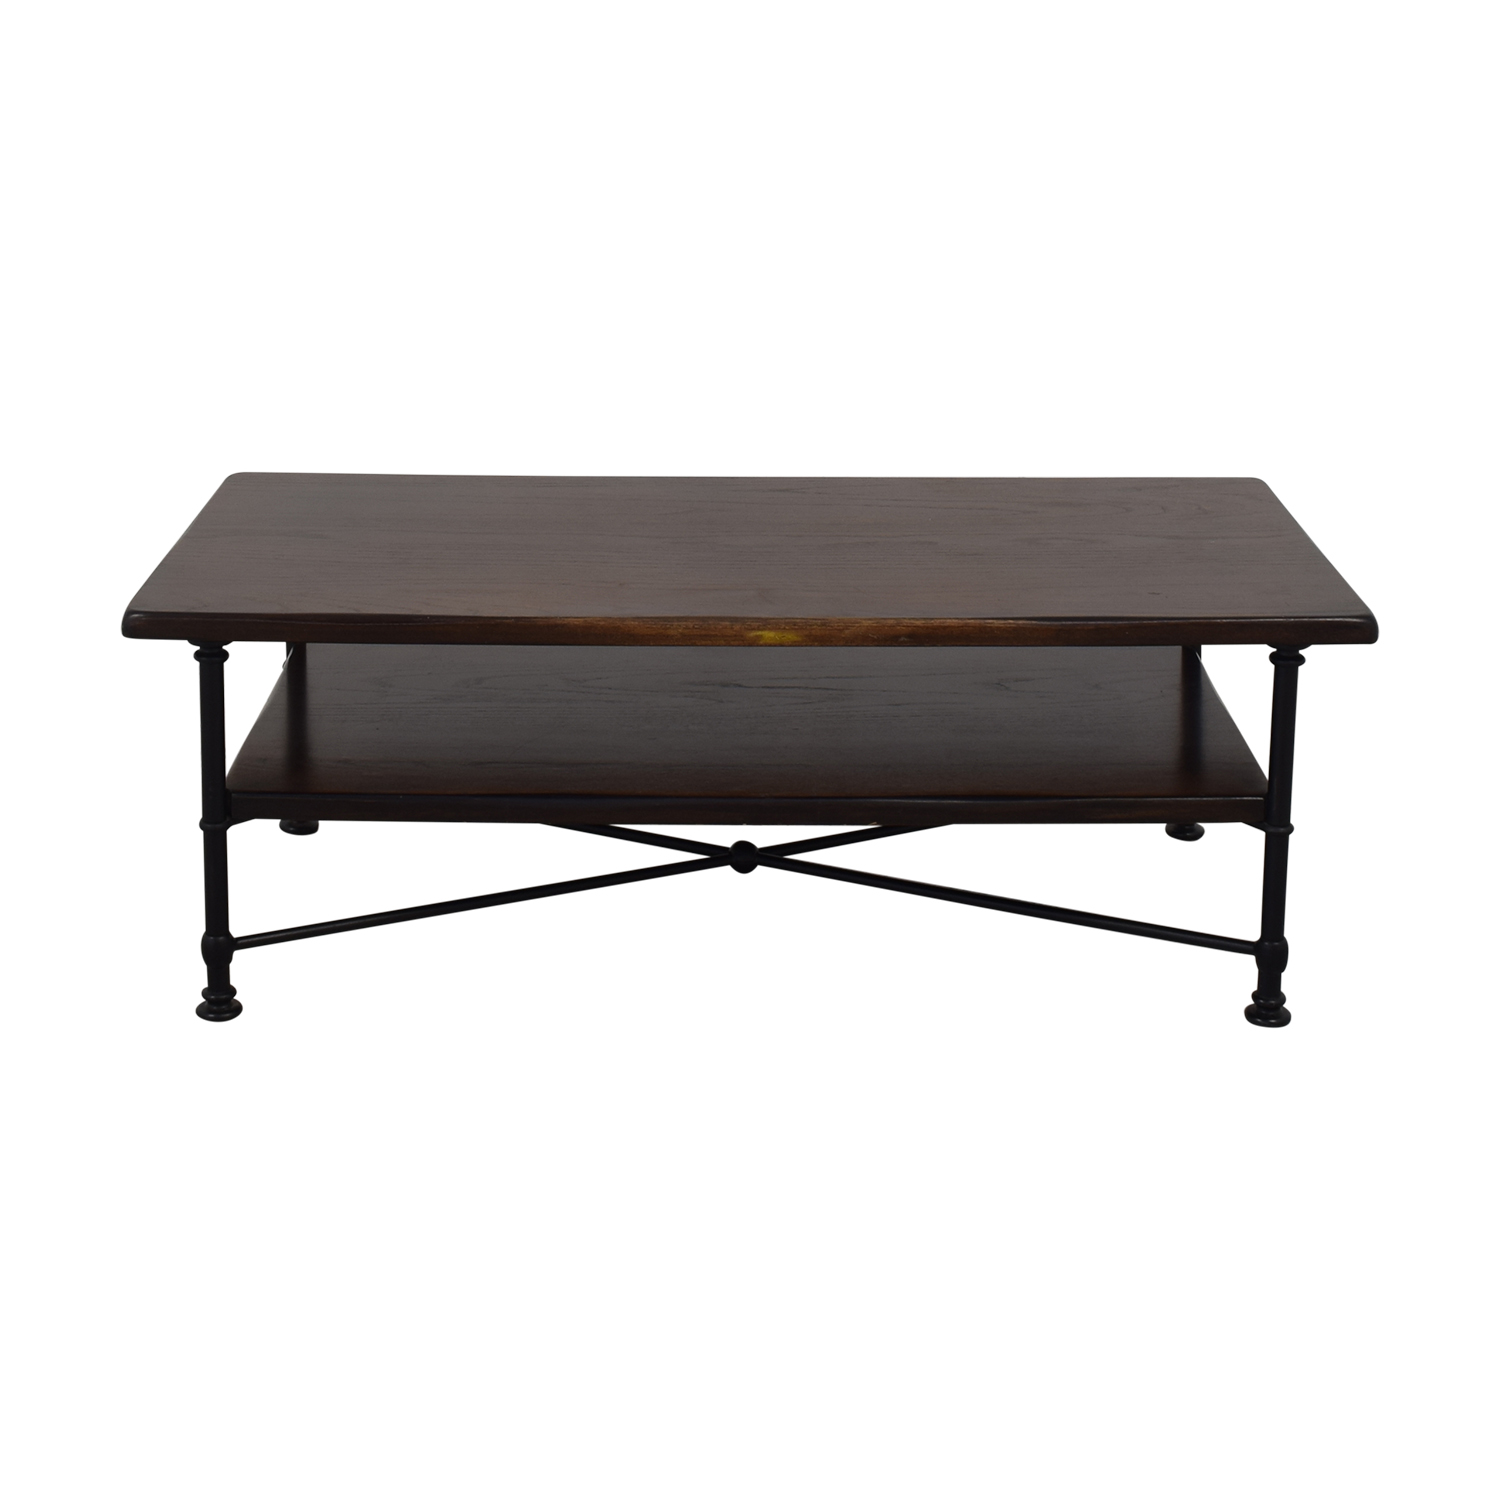 Pottery Barn Pottery Barn Coffee Table on sale